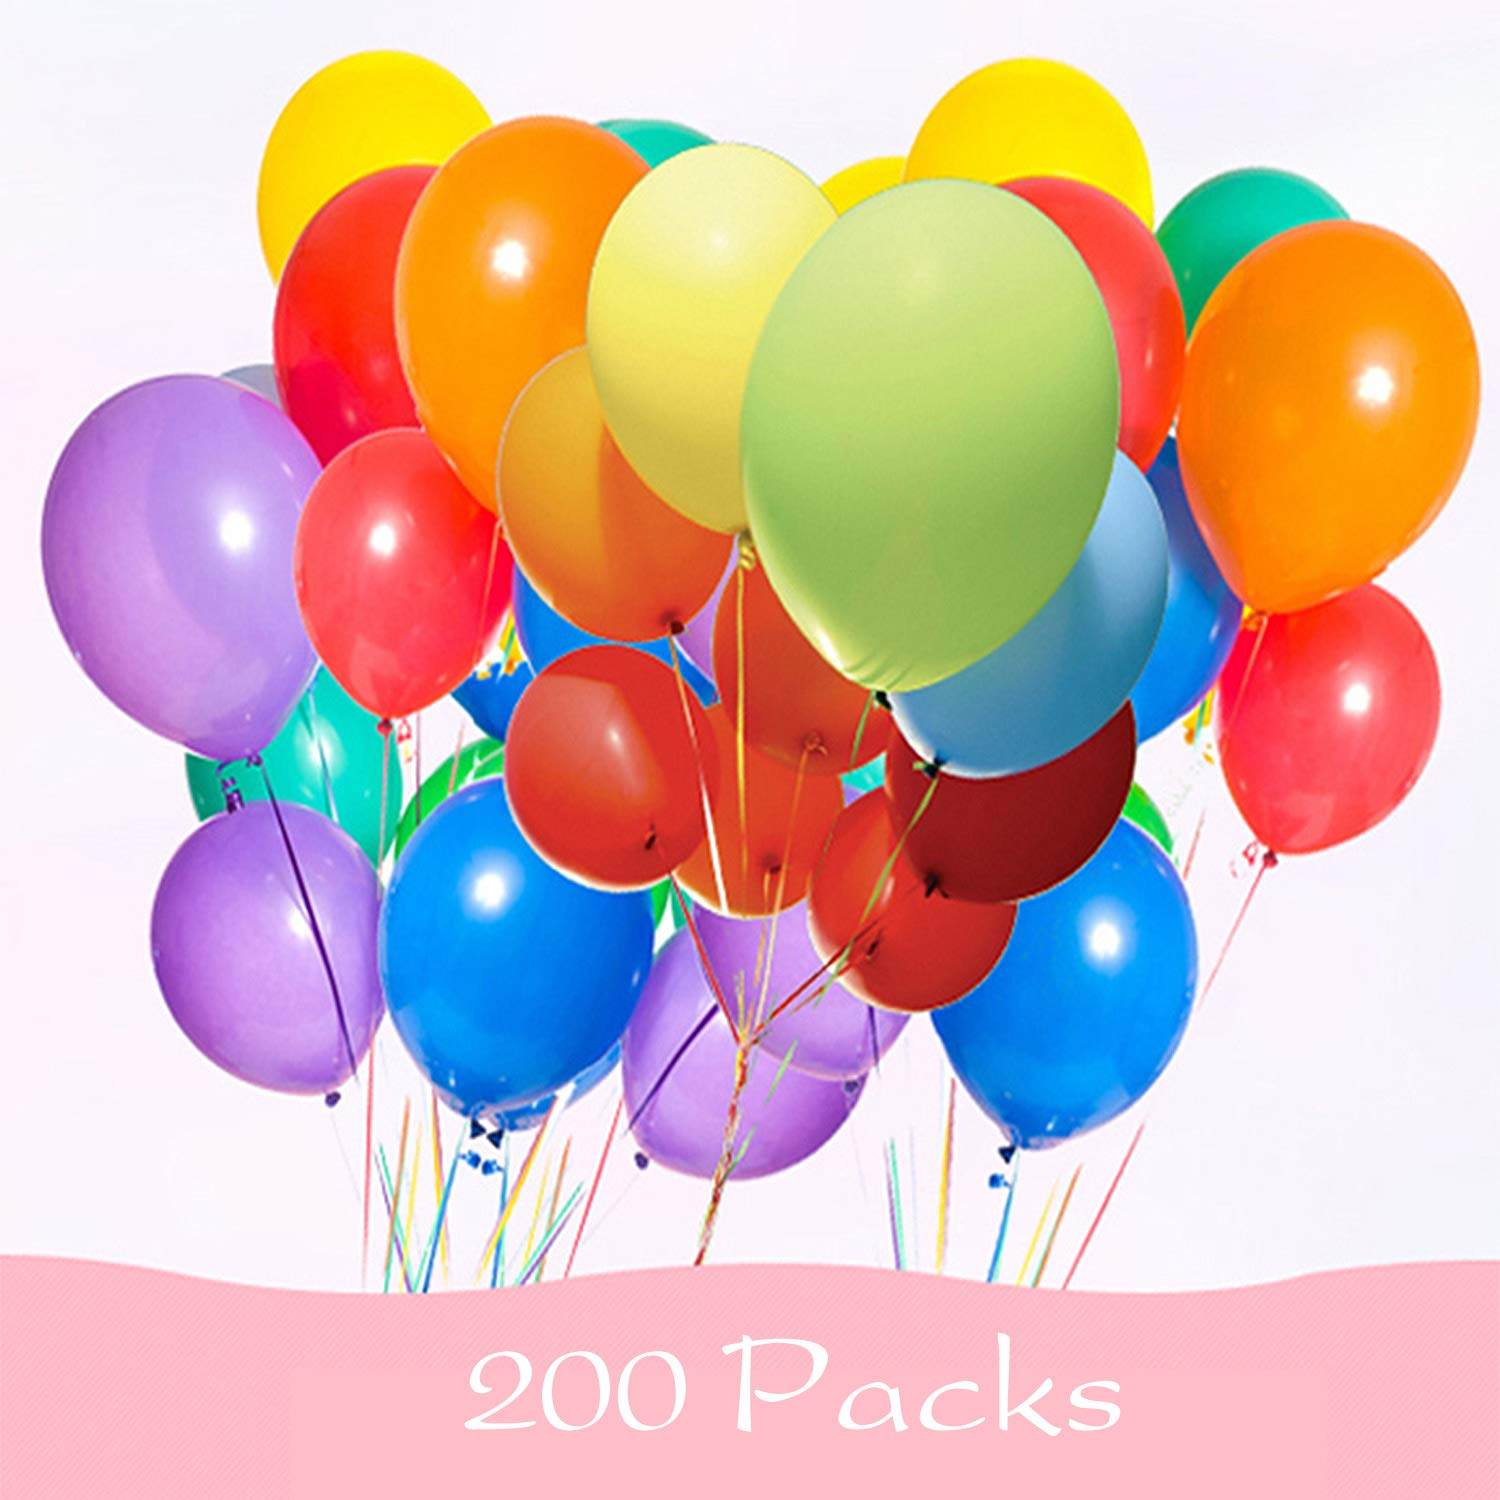 200 Pieces Assorted Colored Balloons Bulk , 11 Inches Latex Helium Balloons for Birthday Party Decorations Wedding Decorations Arch Supplies WooWan